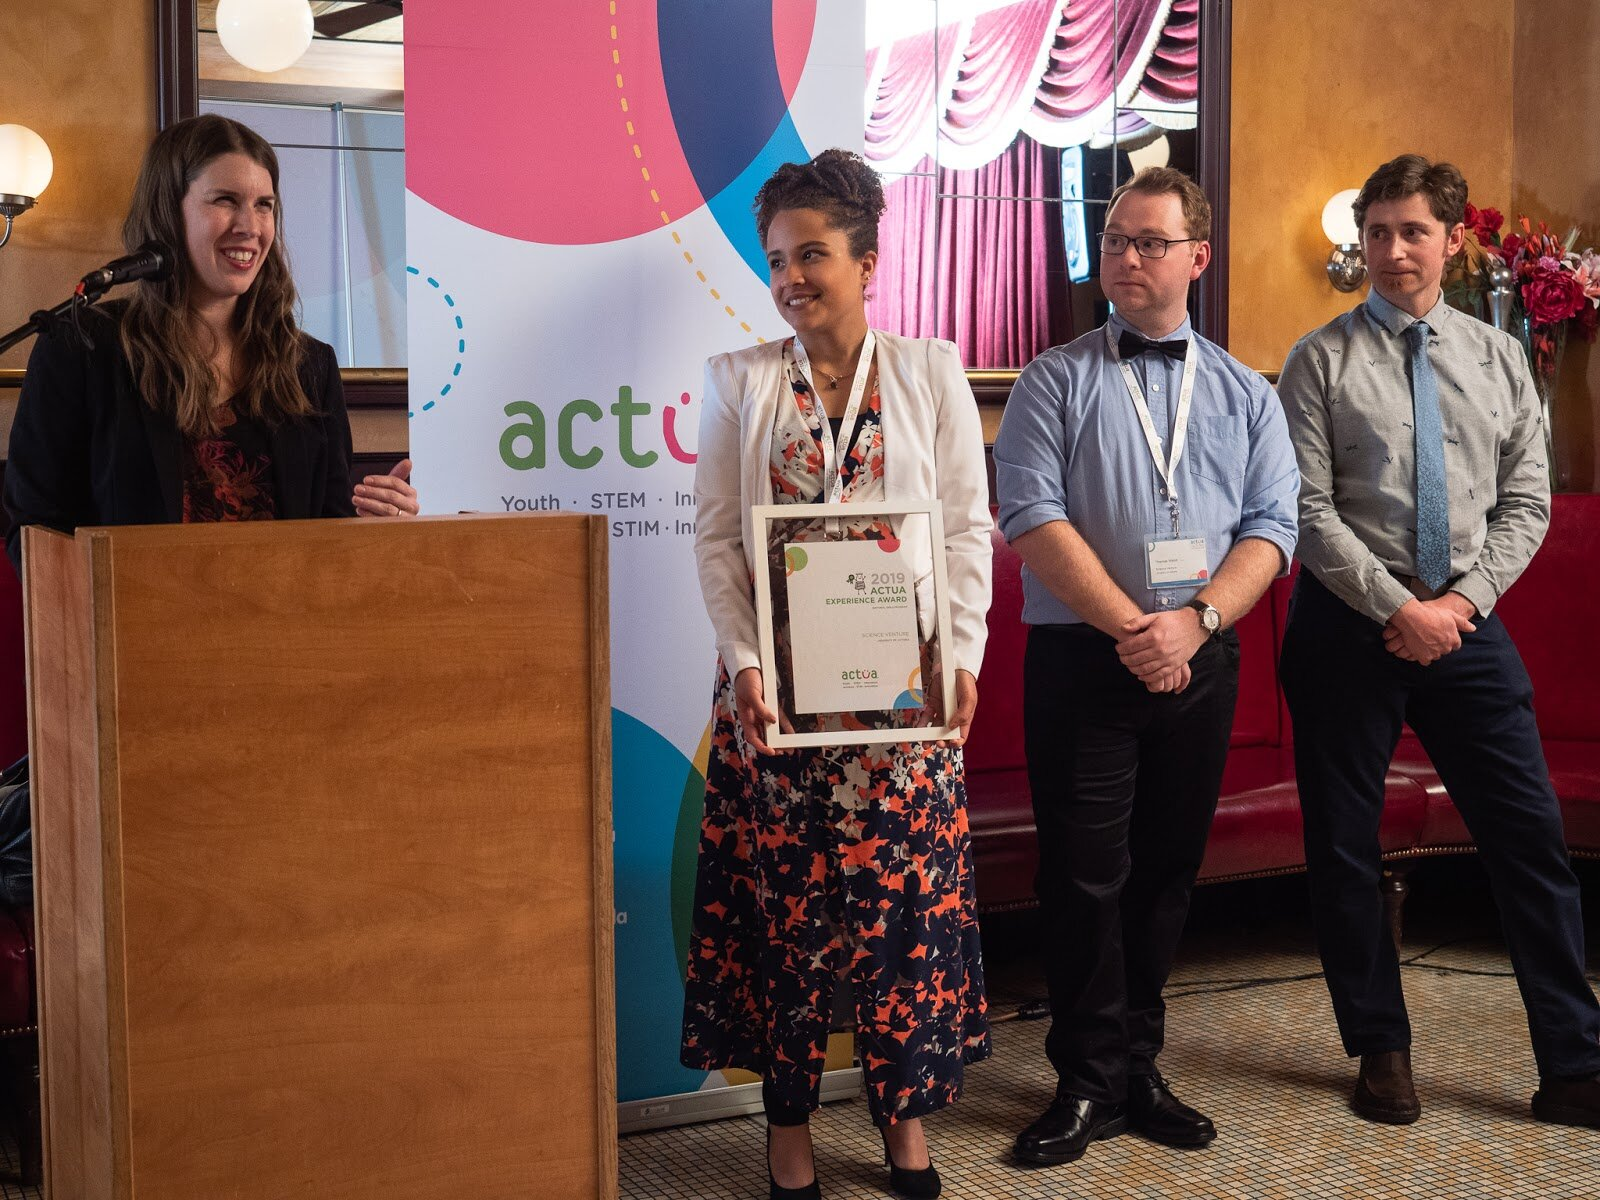 Melisa Yestrau, receiving an award for Science Venture at the Actua National Conference held in Ottawa.